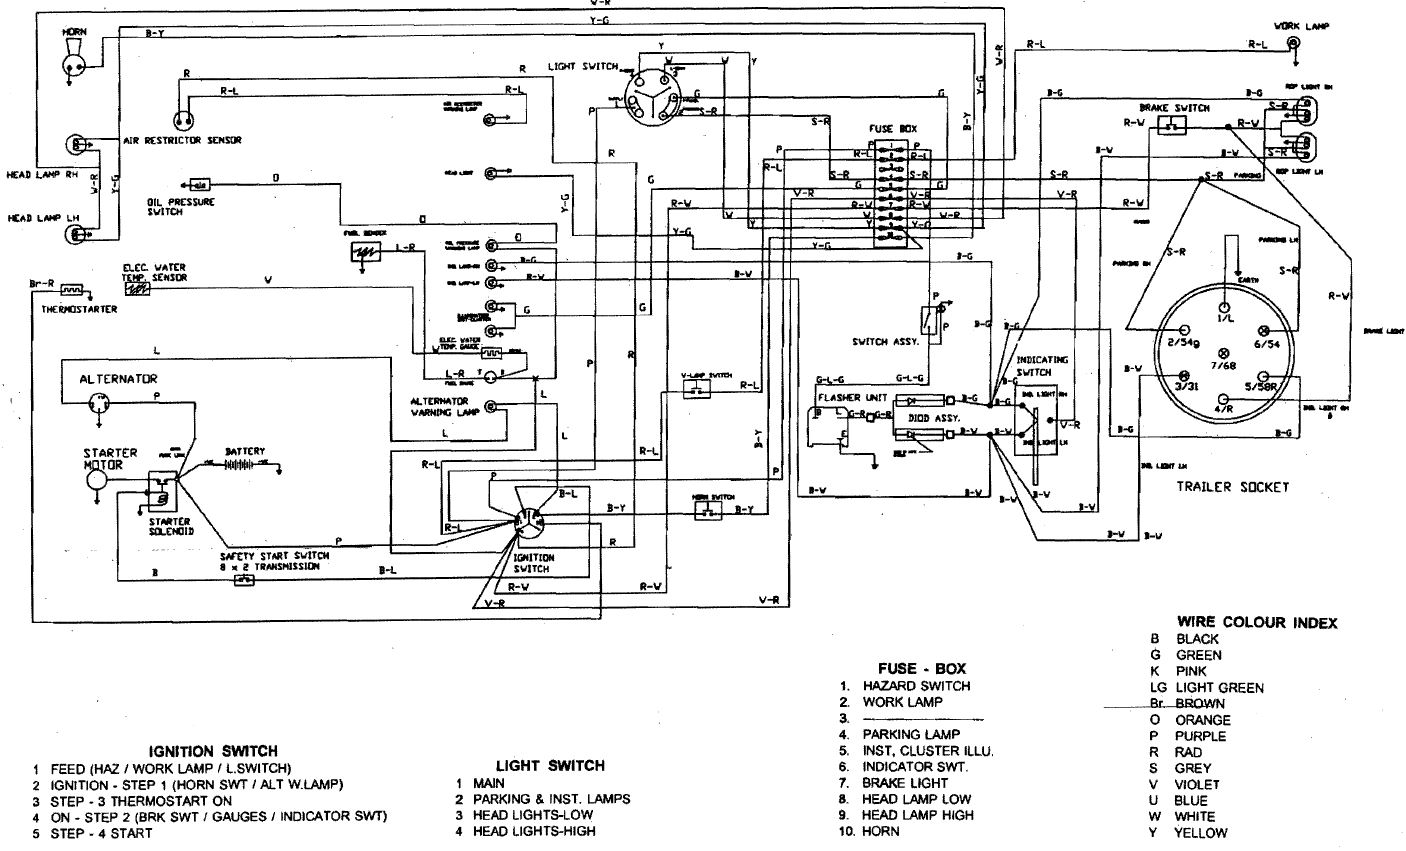 hight resolution of john deere 120 wiring diagram wiring diagram todays wiring schematic for john deere 445 free download wiring diagrams